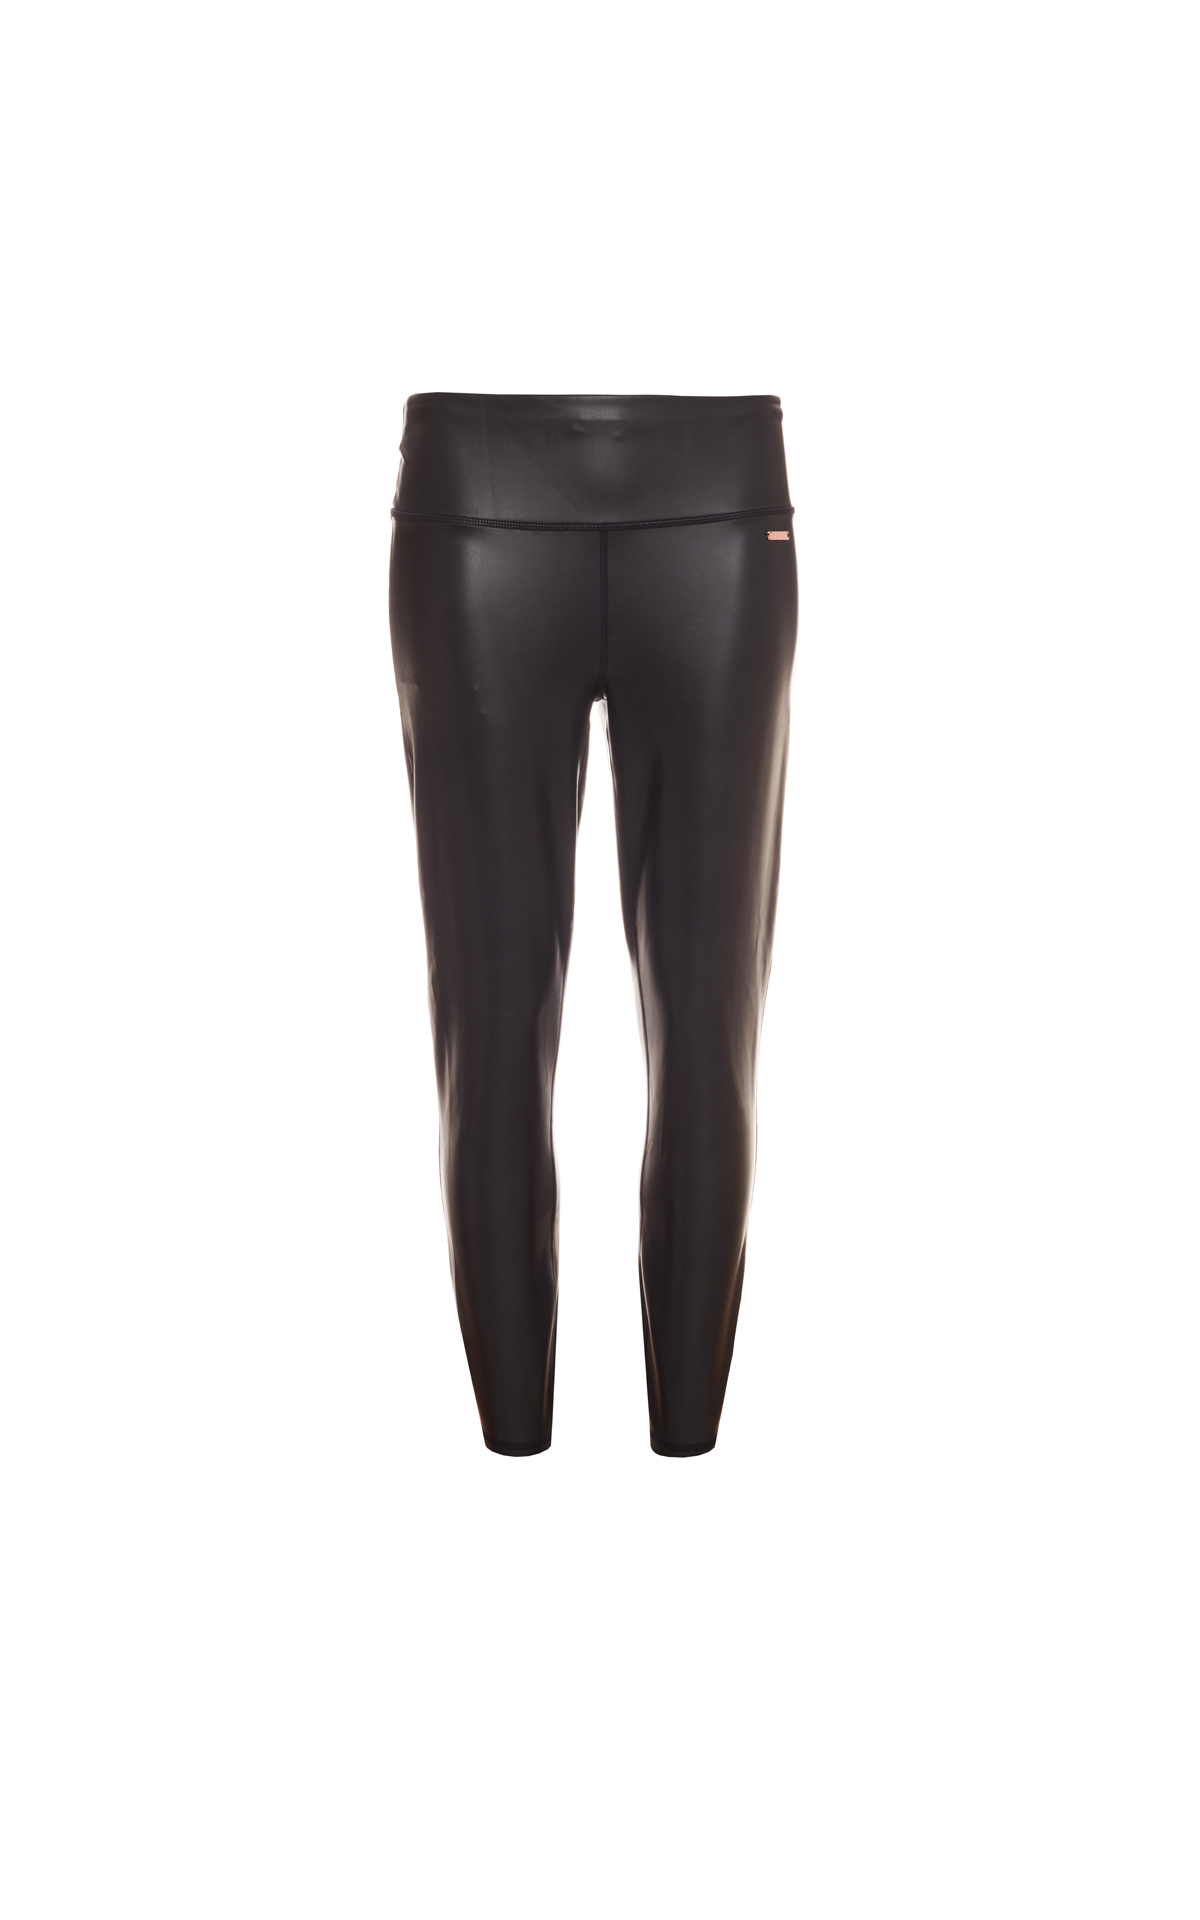 Sweaty Betty Leather look trouser from Bicester Village